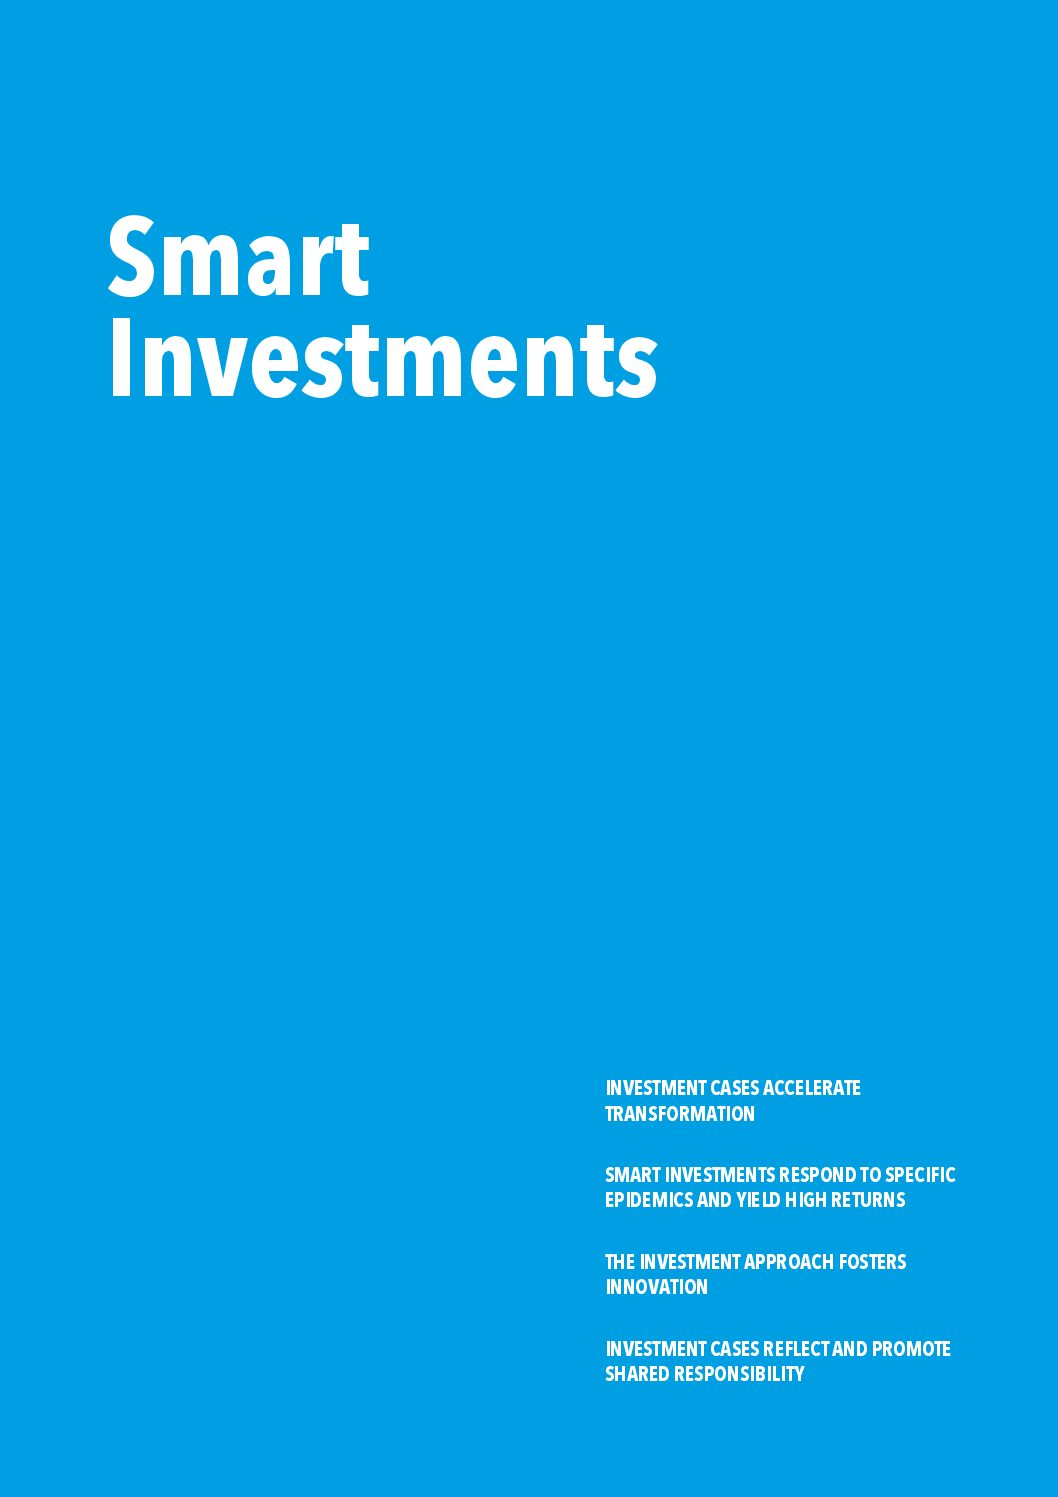 Smart investments.